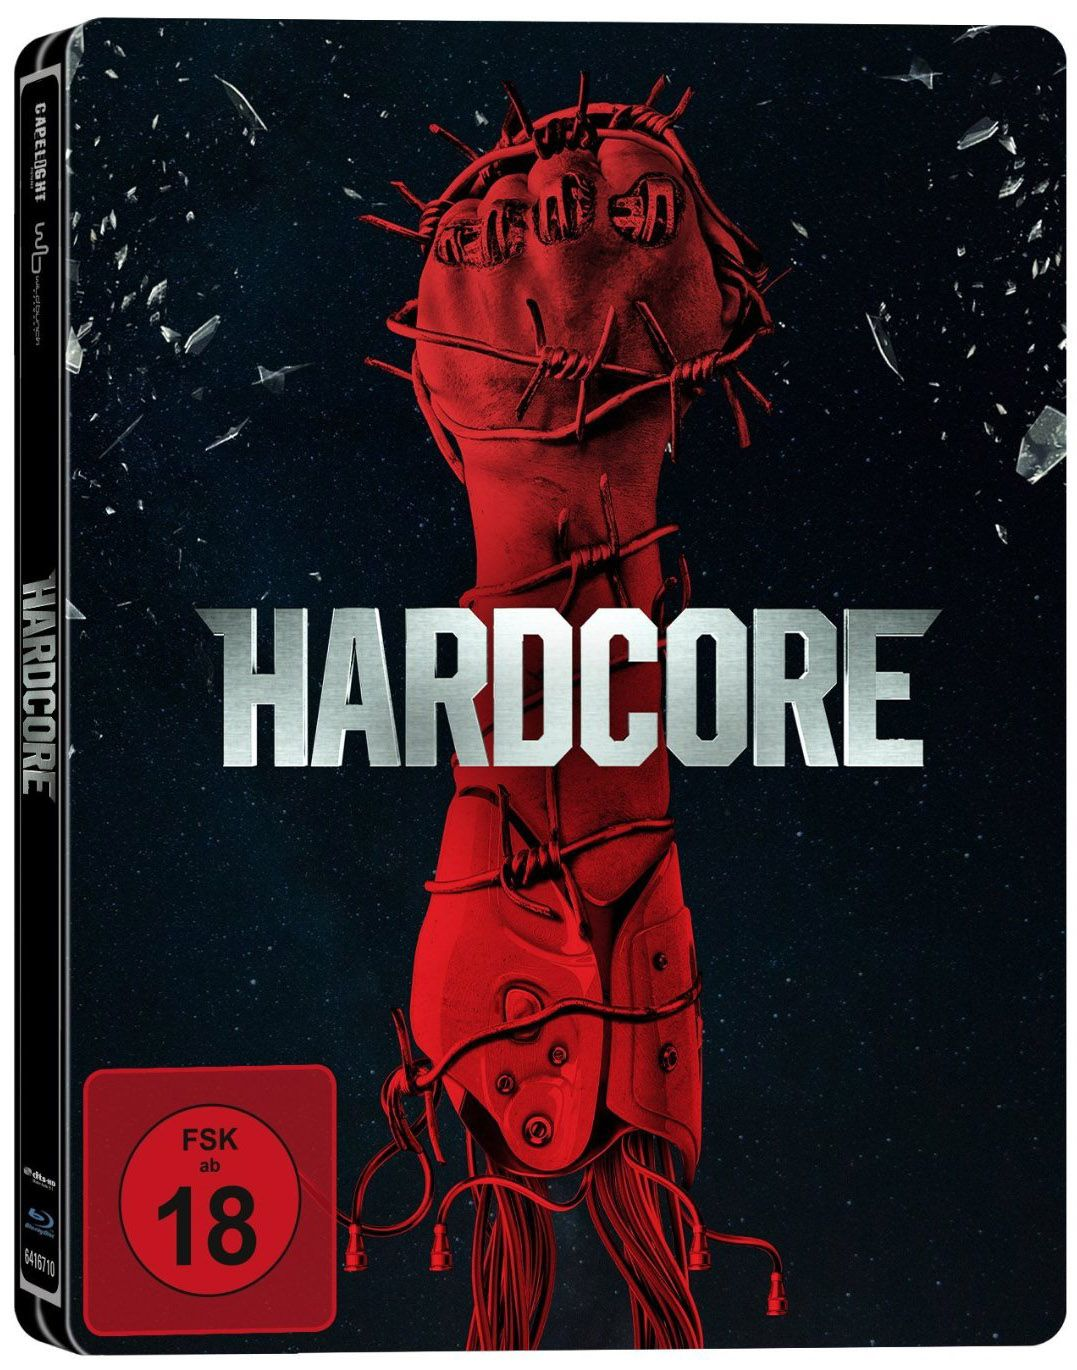 Hardcore (Lim. Steelbook) (BLURAY)